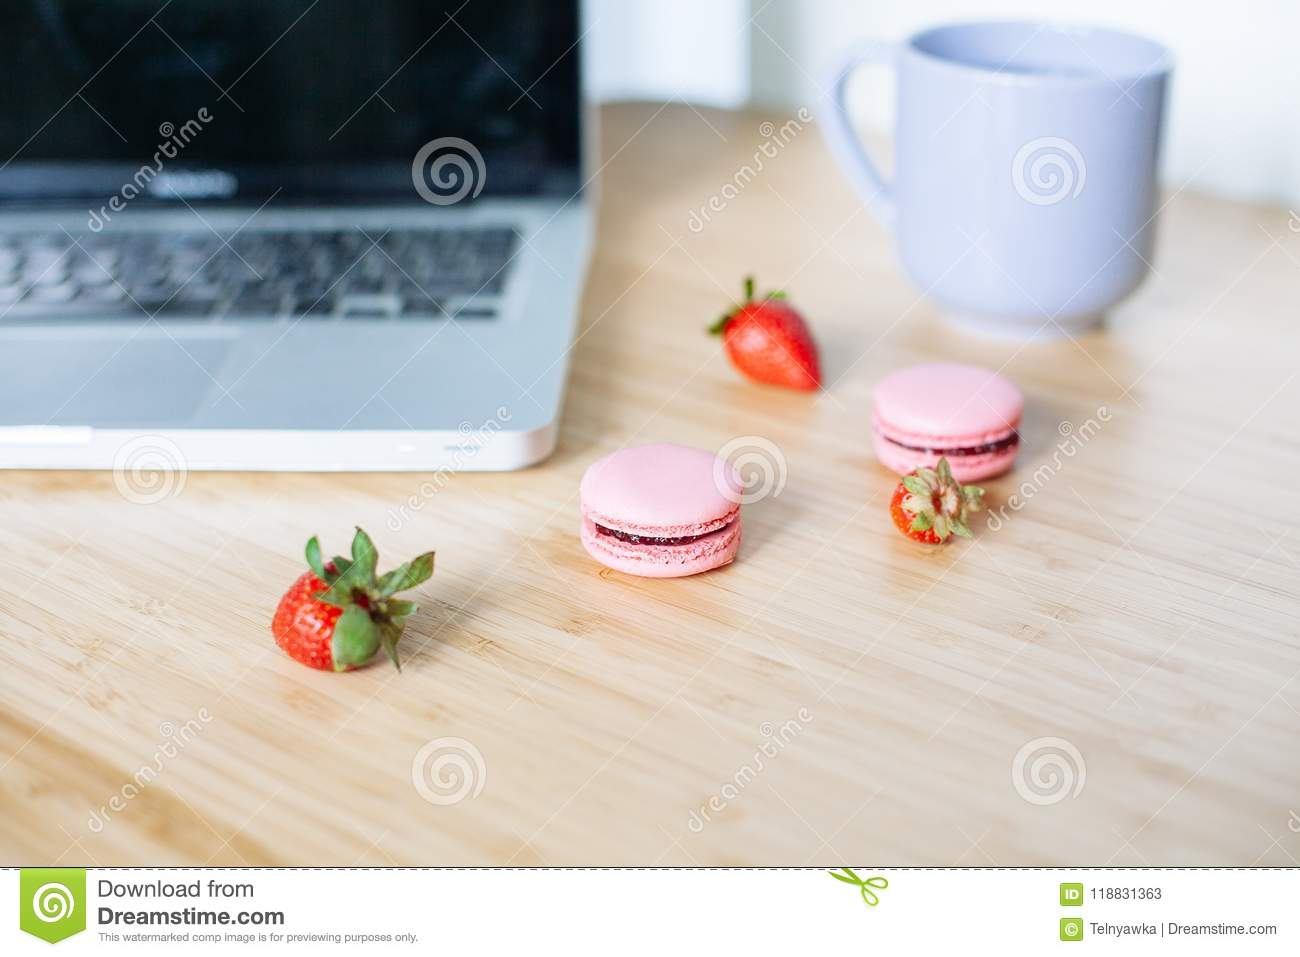 Workplace with laptop, macaroons, strawberry and cup of tea